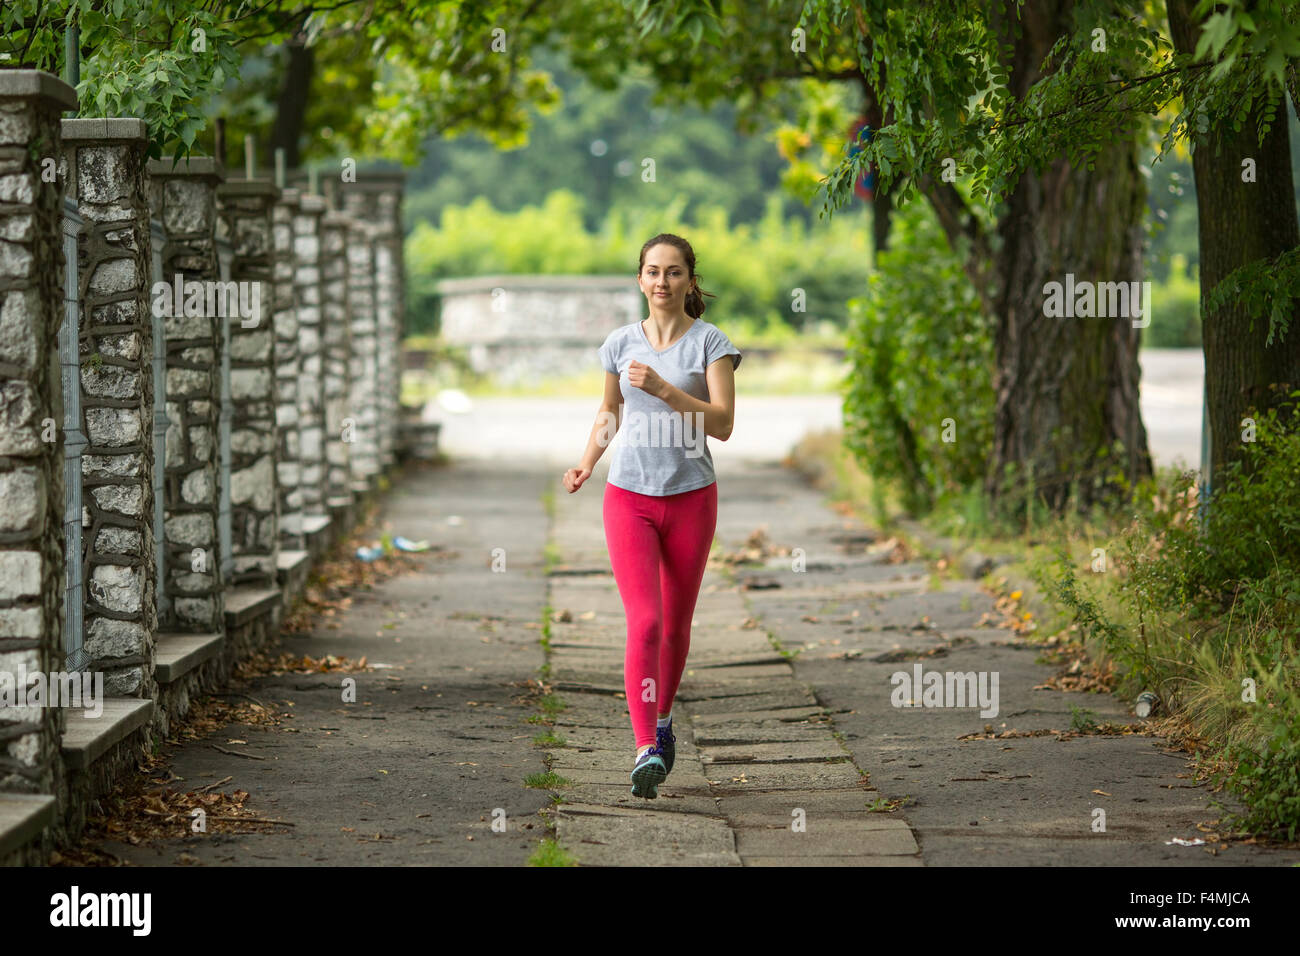 Young girl during a morning jog in the Park. - Stock Image